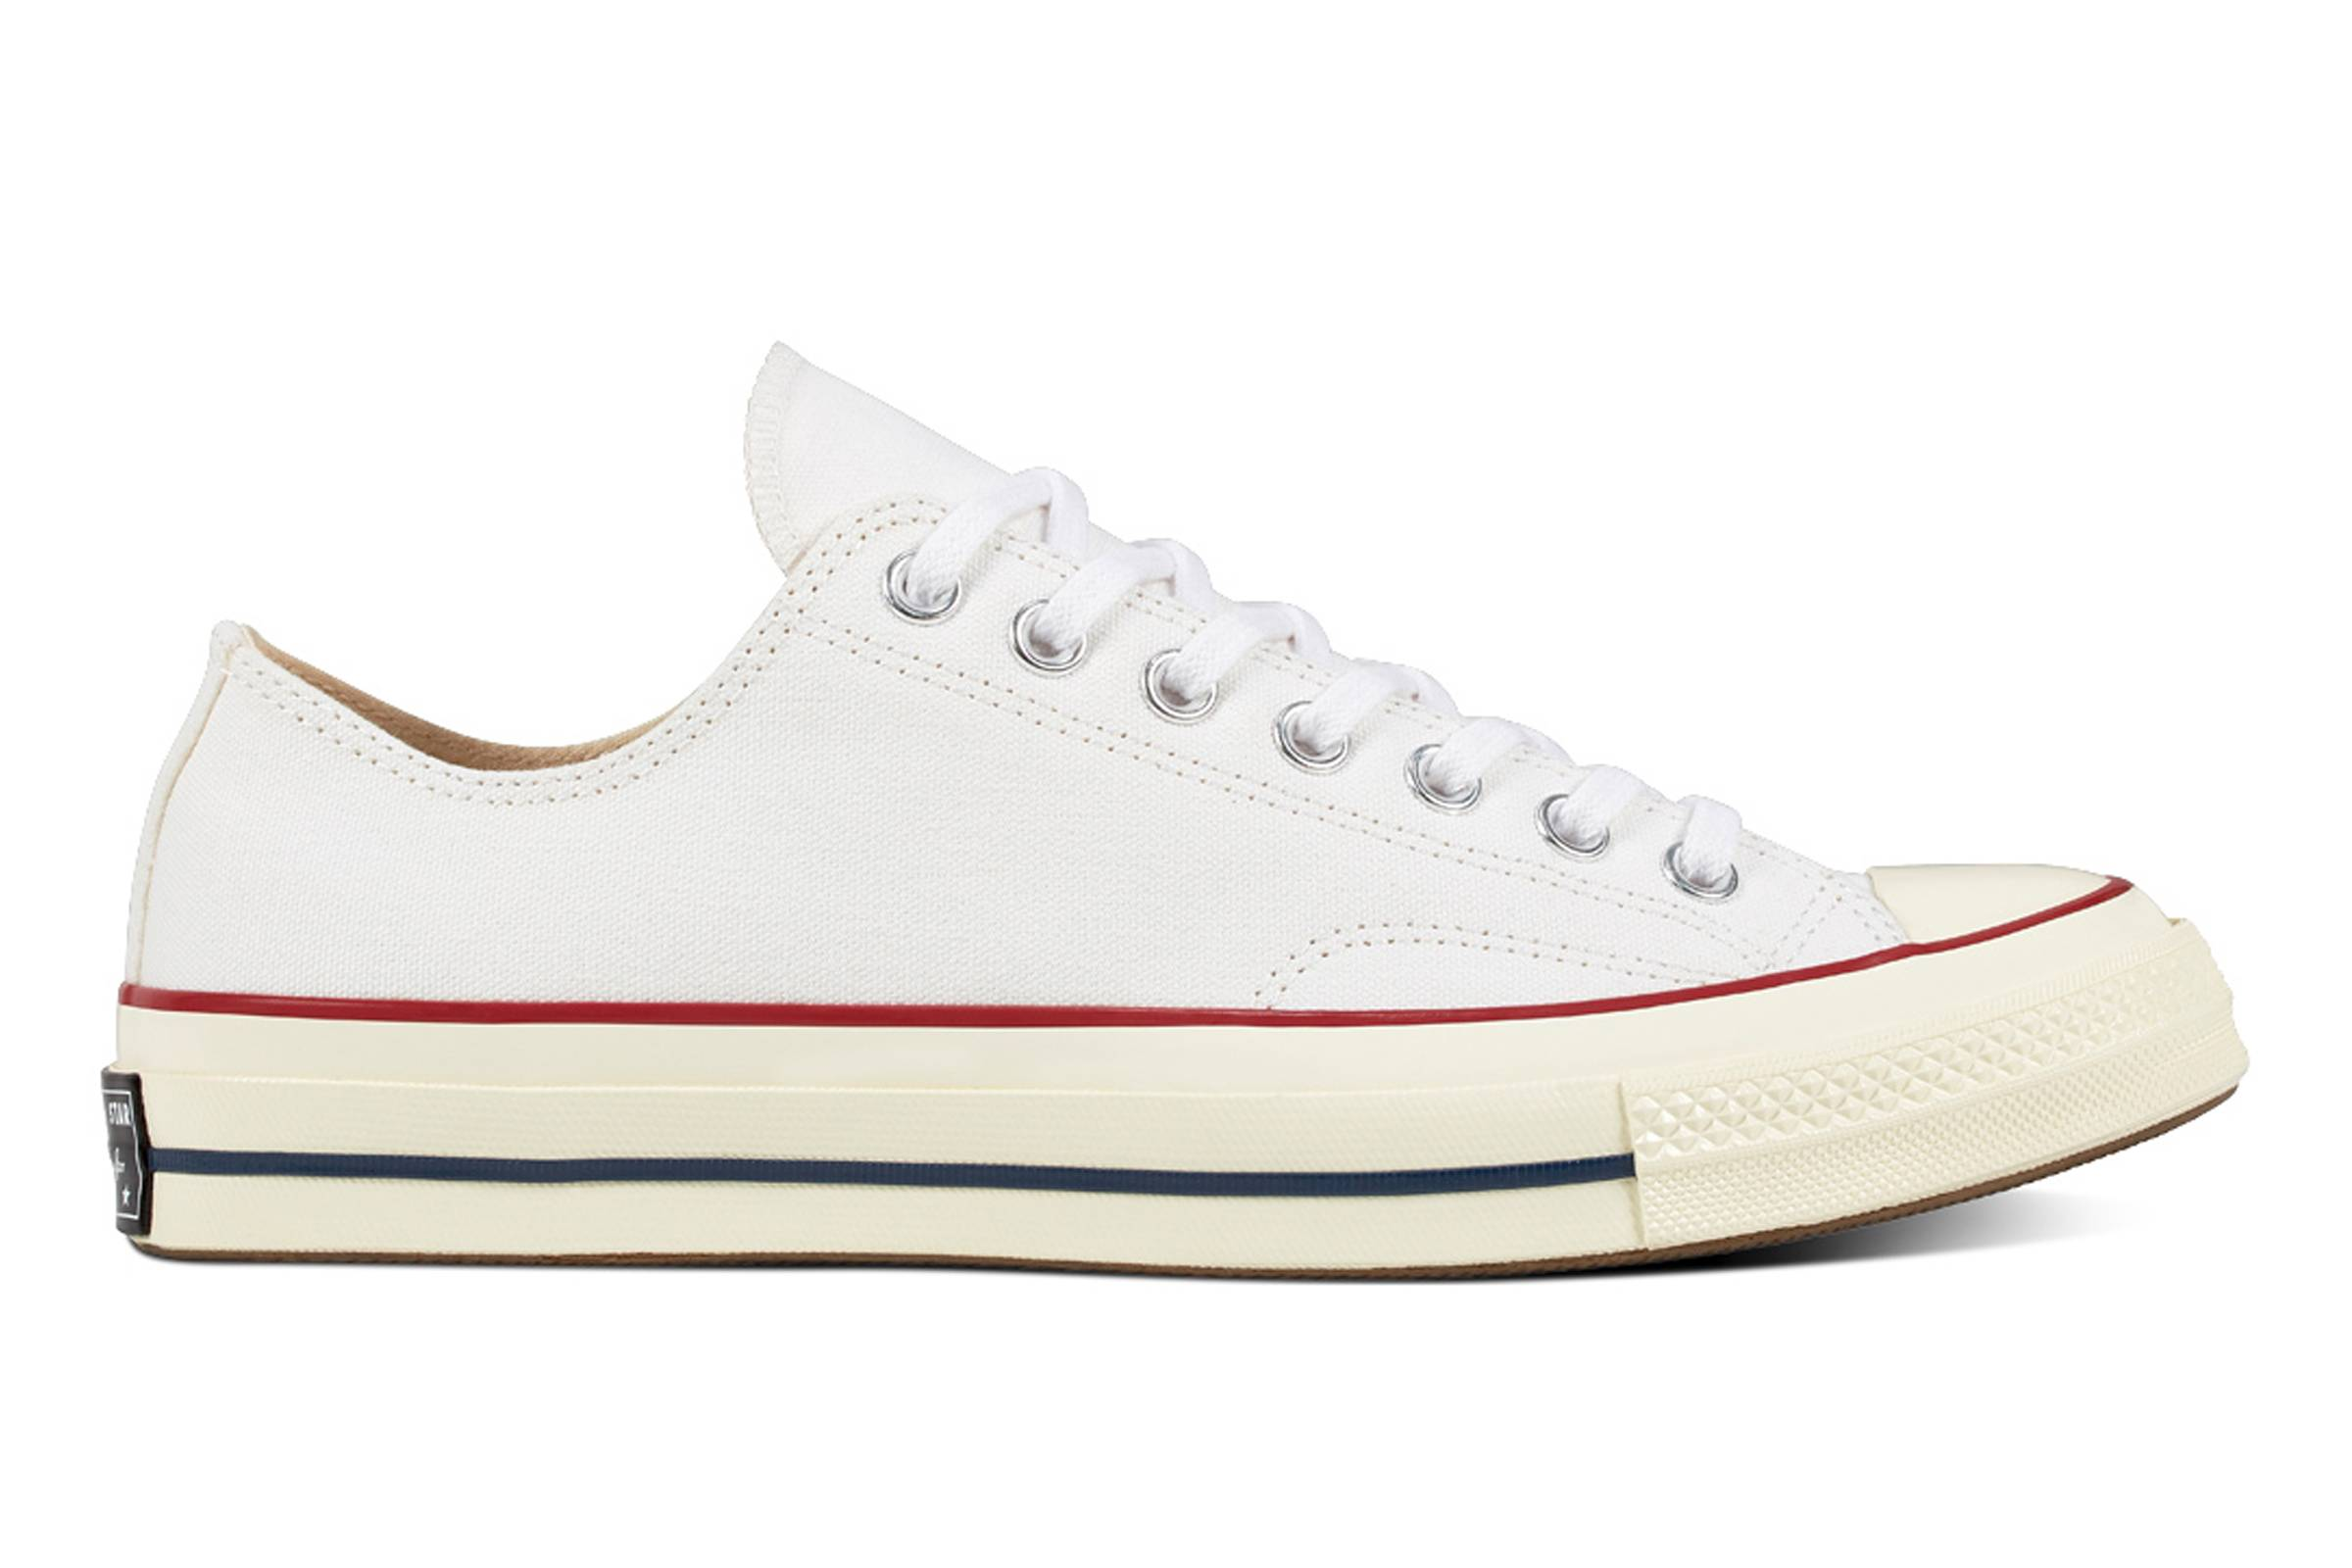 Converse All-Star Chuck 70 Low